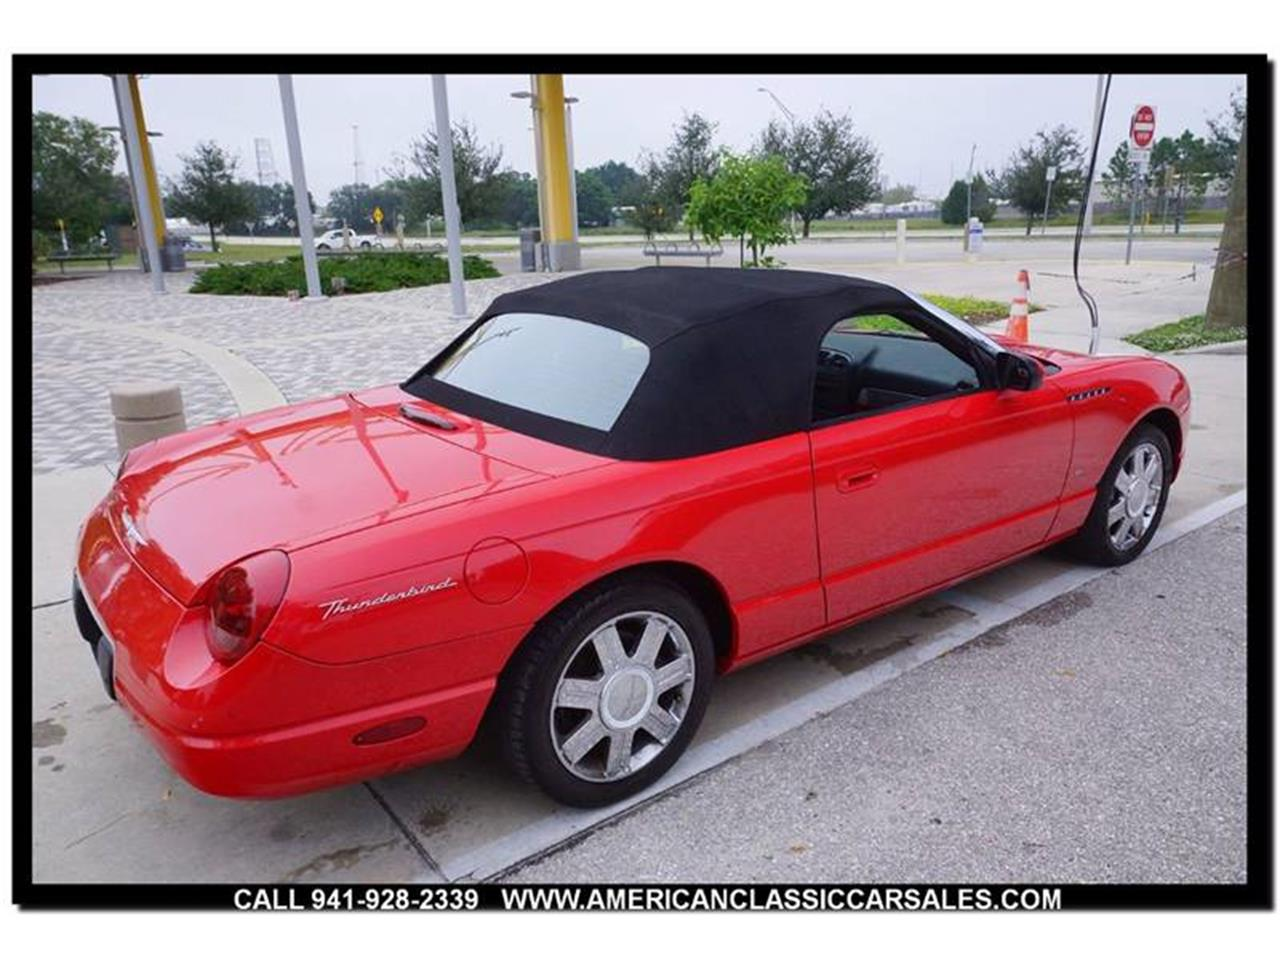 Large Picture of 2004 Thunderbird located in Sarasota Florida - $12,440.00 - MCAN